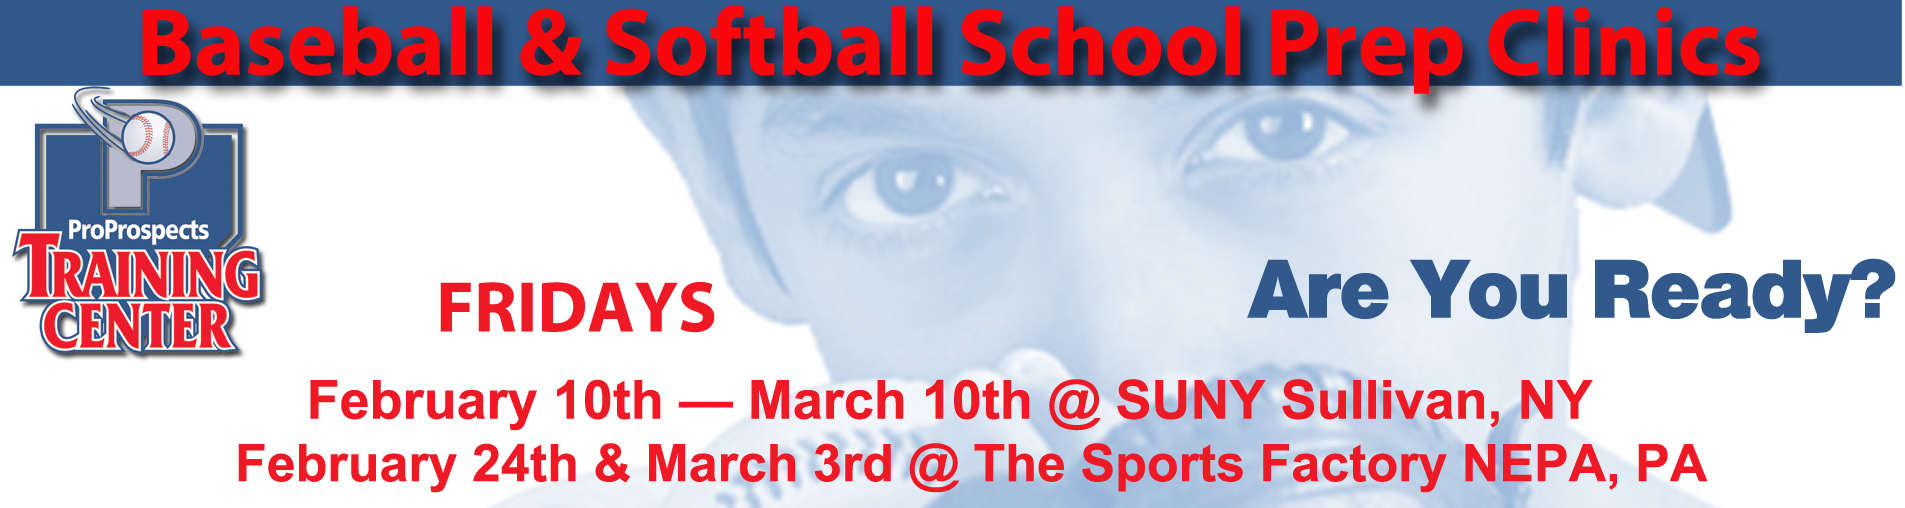 Baseball & Softball Prep Clinics